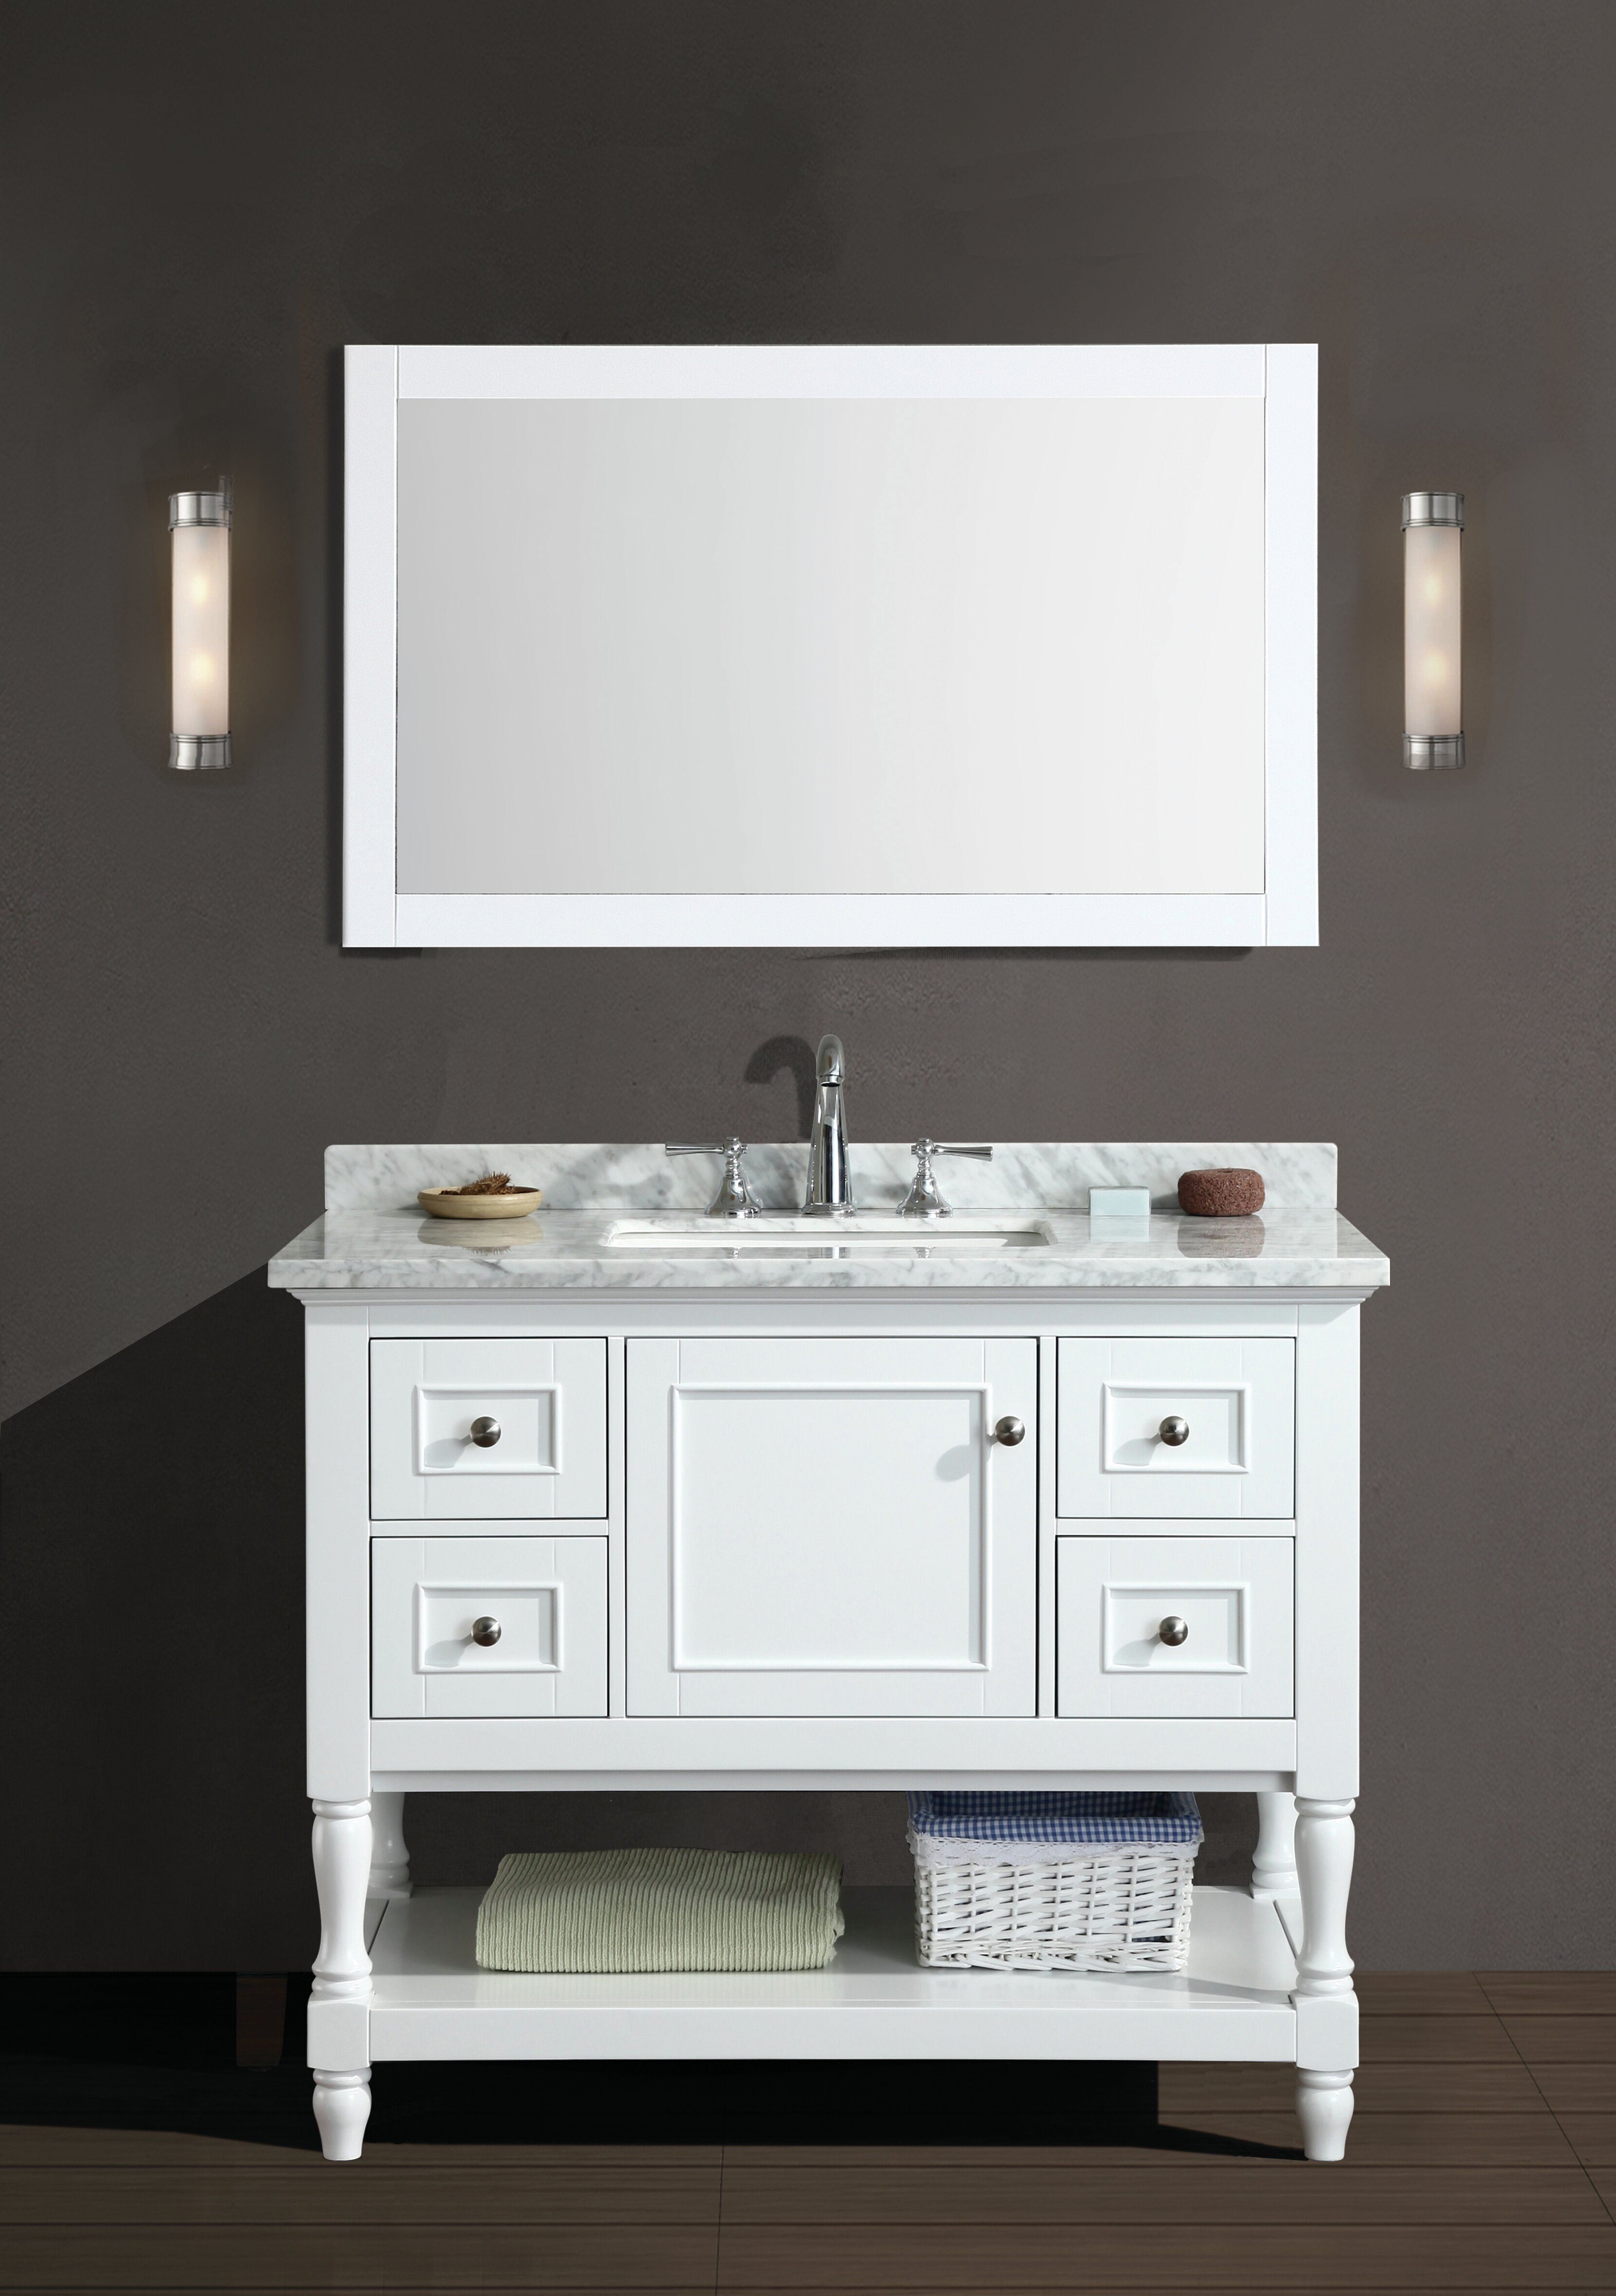 to top vanity simple decorating room home decor bathroom inch trends at design tips ideas lovely color vanities